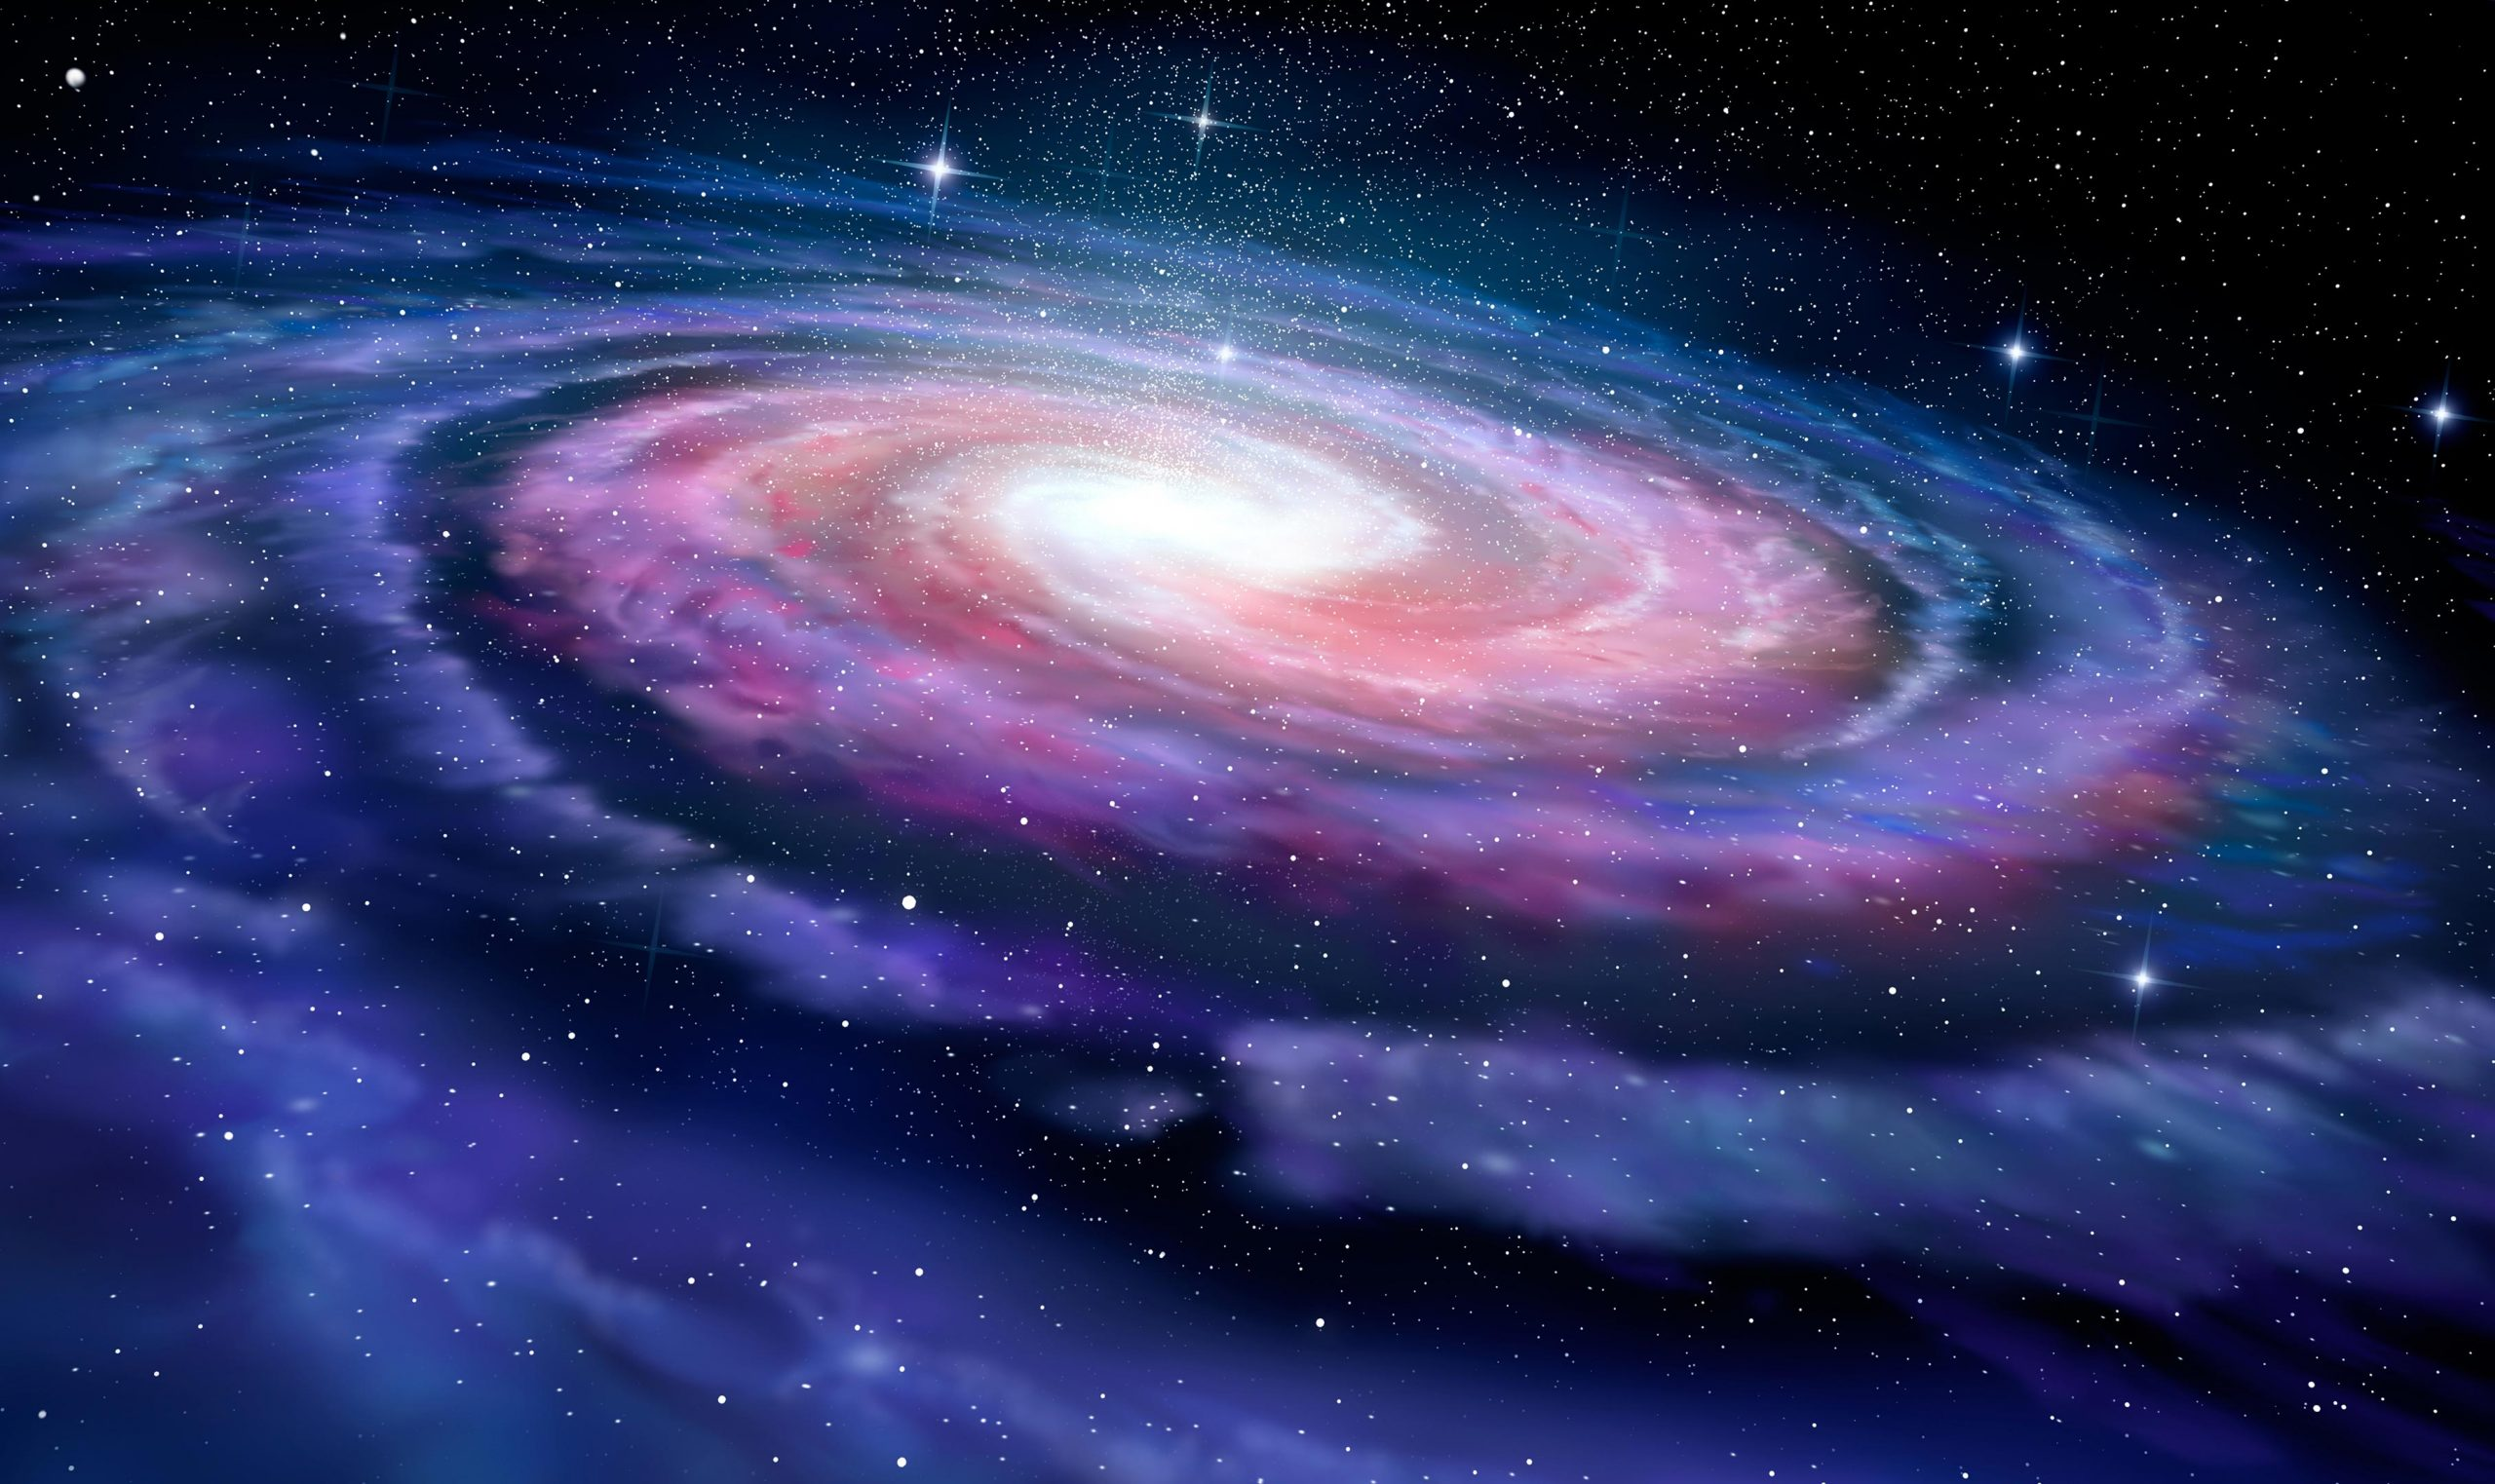 Milky Way Is Being Twisted and Deformed With Extreme Violence by the  Gravitational Force of the LMC's Dark Matter Halo